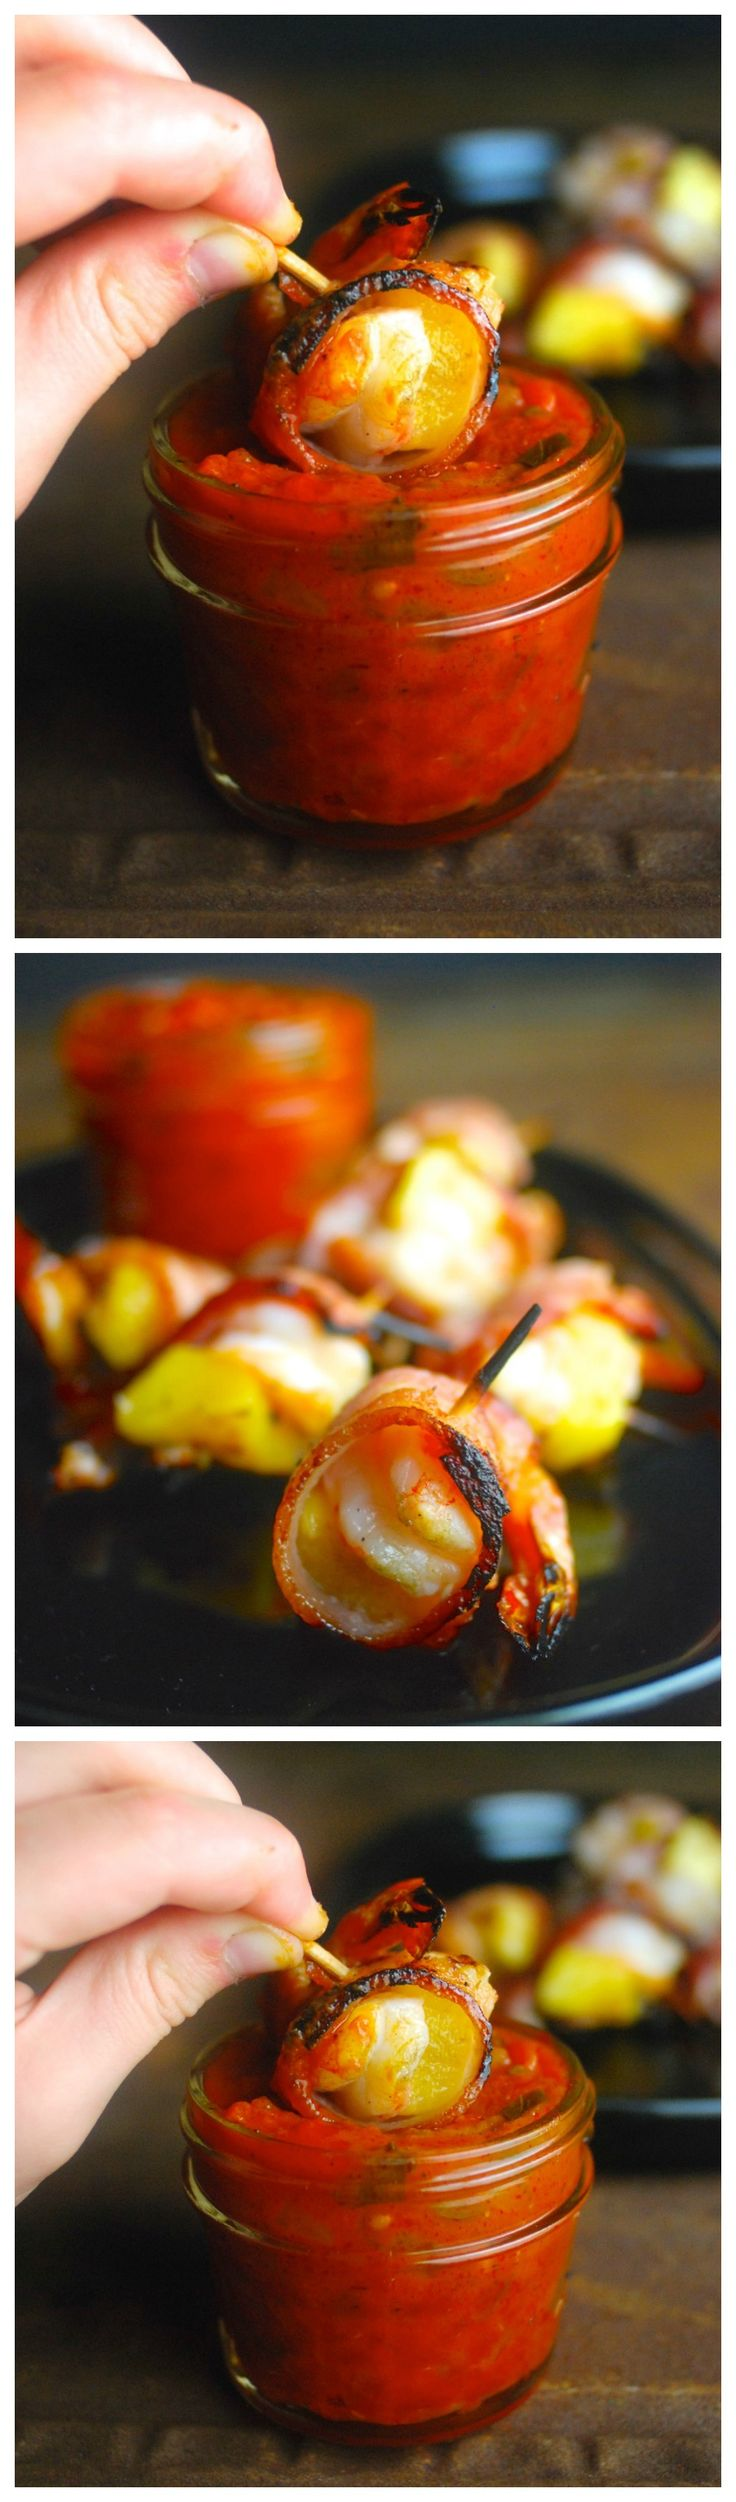 We love this healthy, grown-up version of Hawaiian pizza -- shrimp and fresh pineapple wrapped in bacon with a homemade marinara dipping sauce. Perfect for game day or Super Bowl. Paleo, gluten free, Whole30.